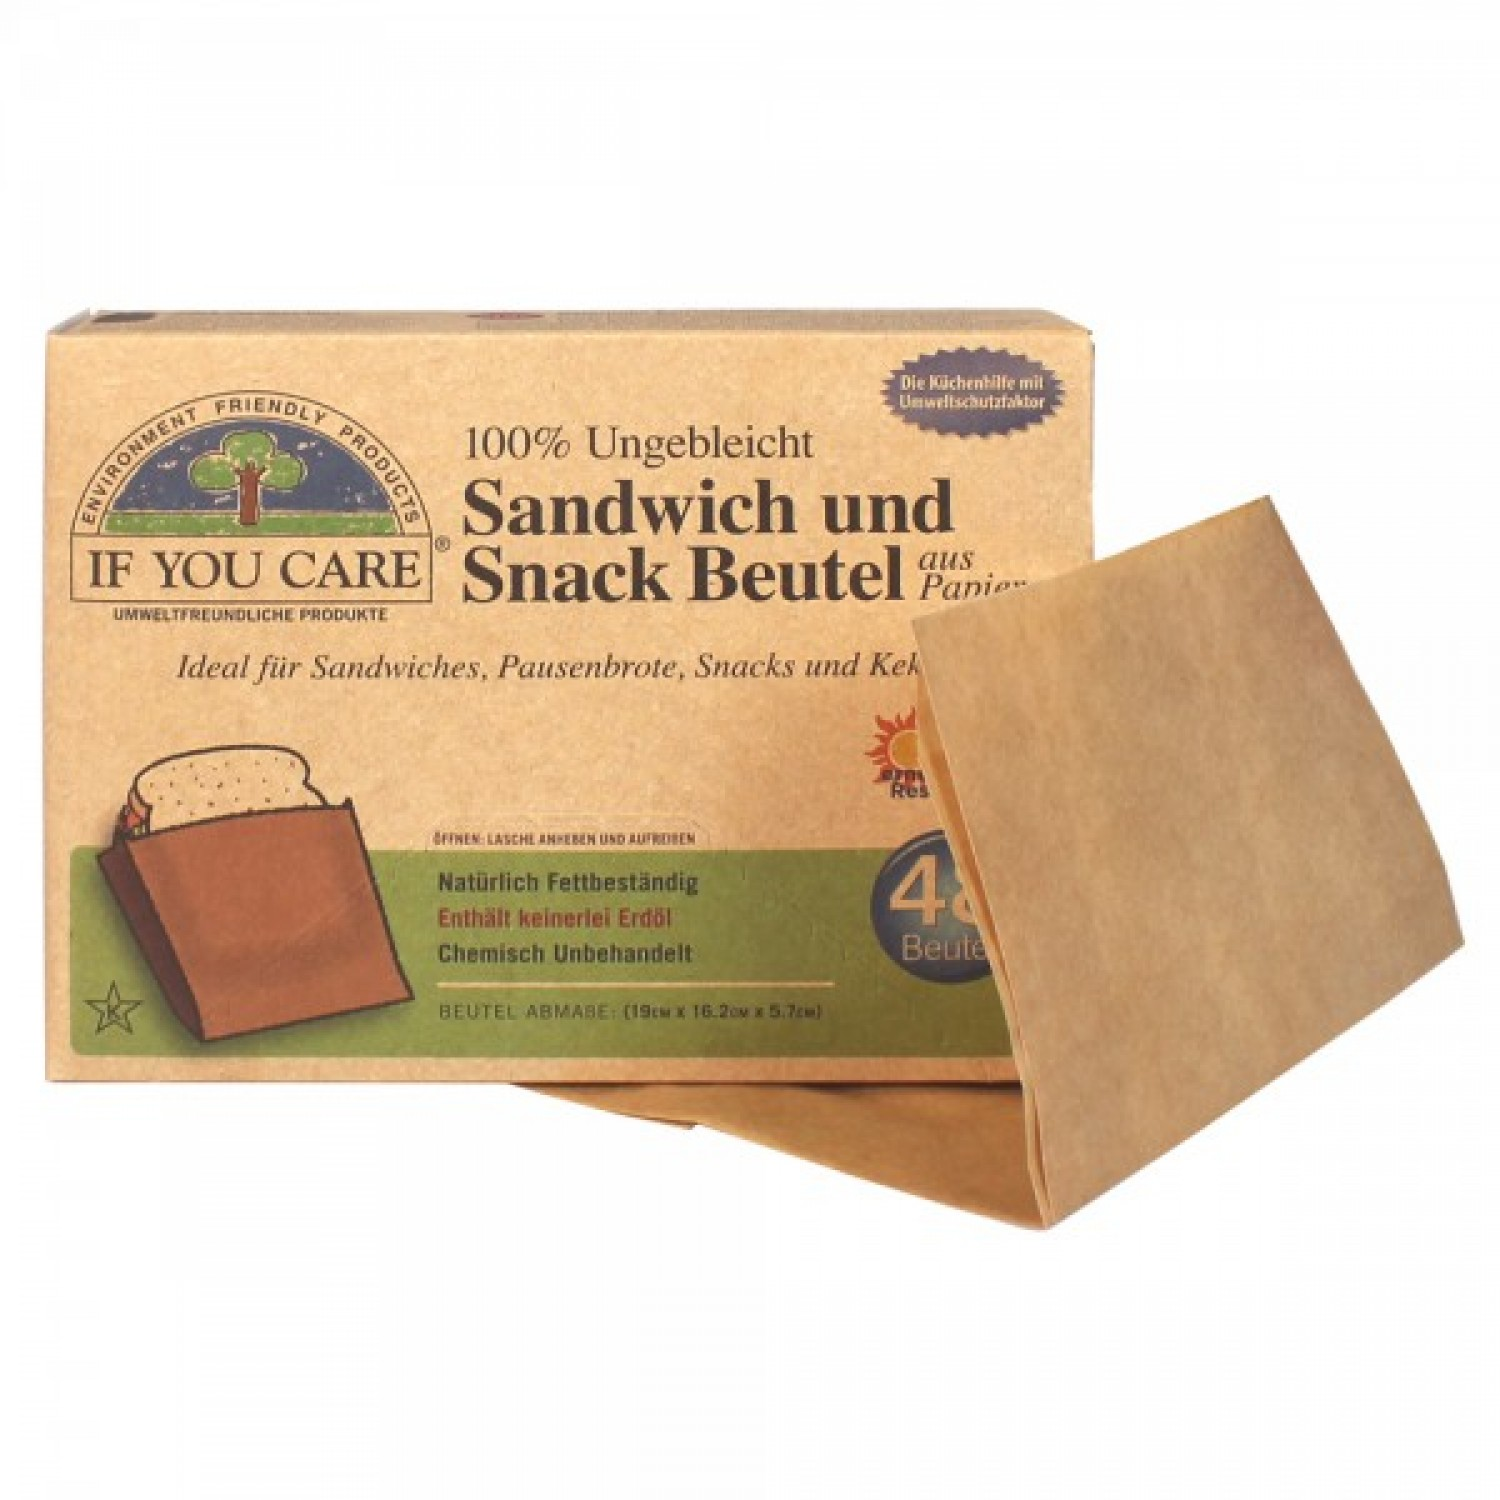 If You Care vegan Sandwich und Snackbeutel 48 St. | IYC